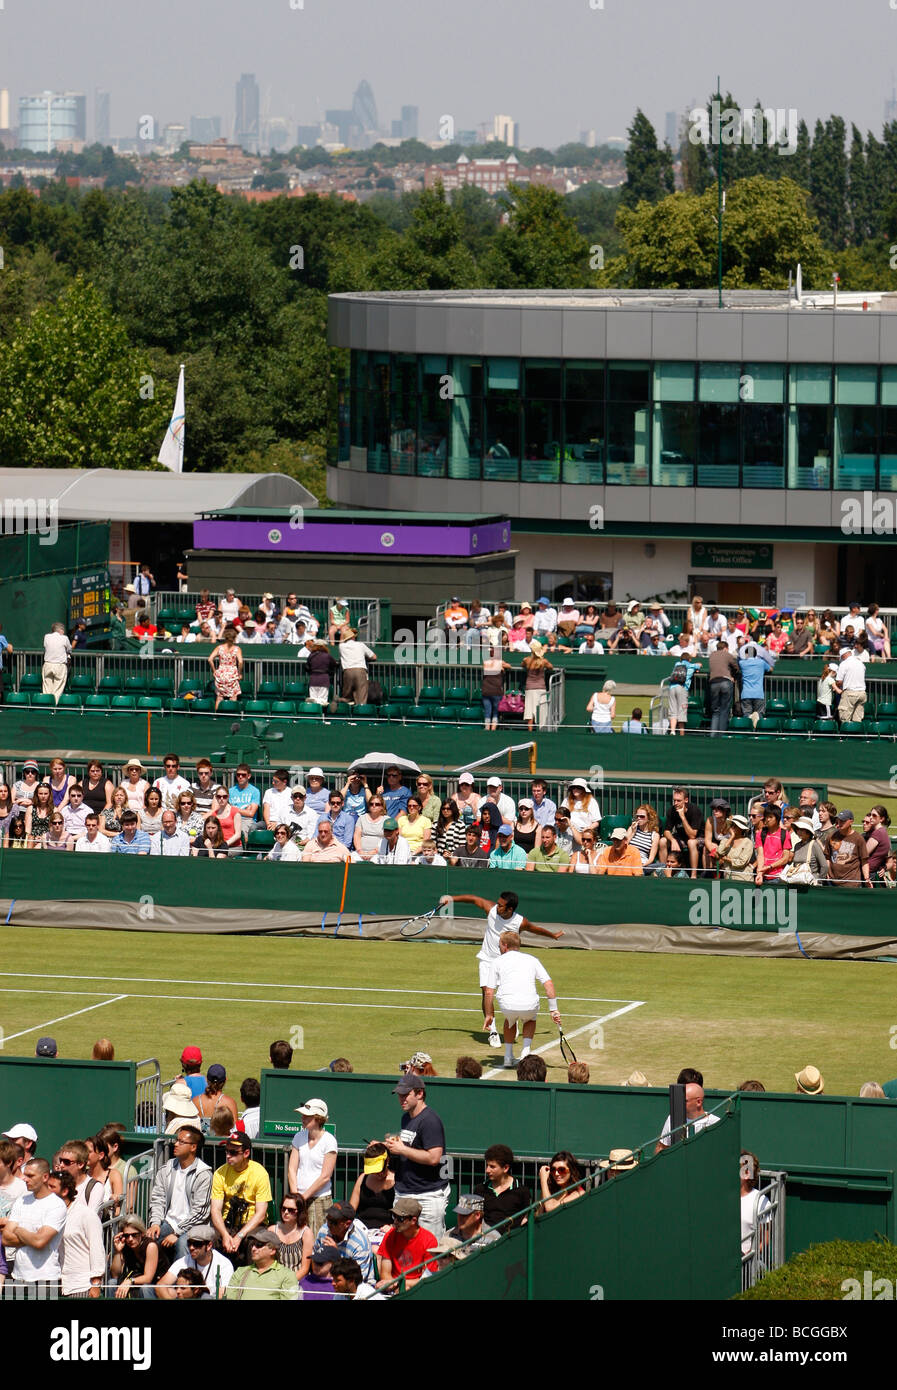 View of the Wimbledon tennis courts with the London skyline in the background - Stock Image